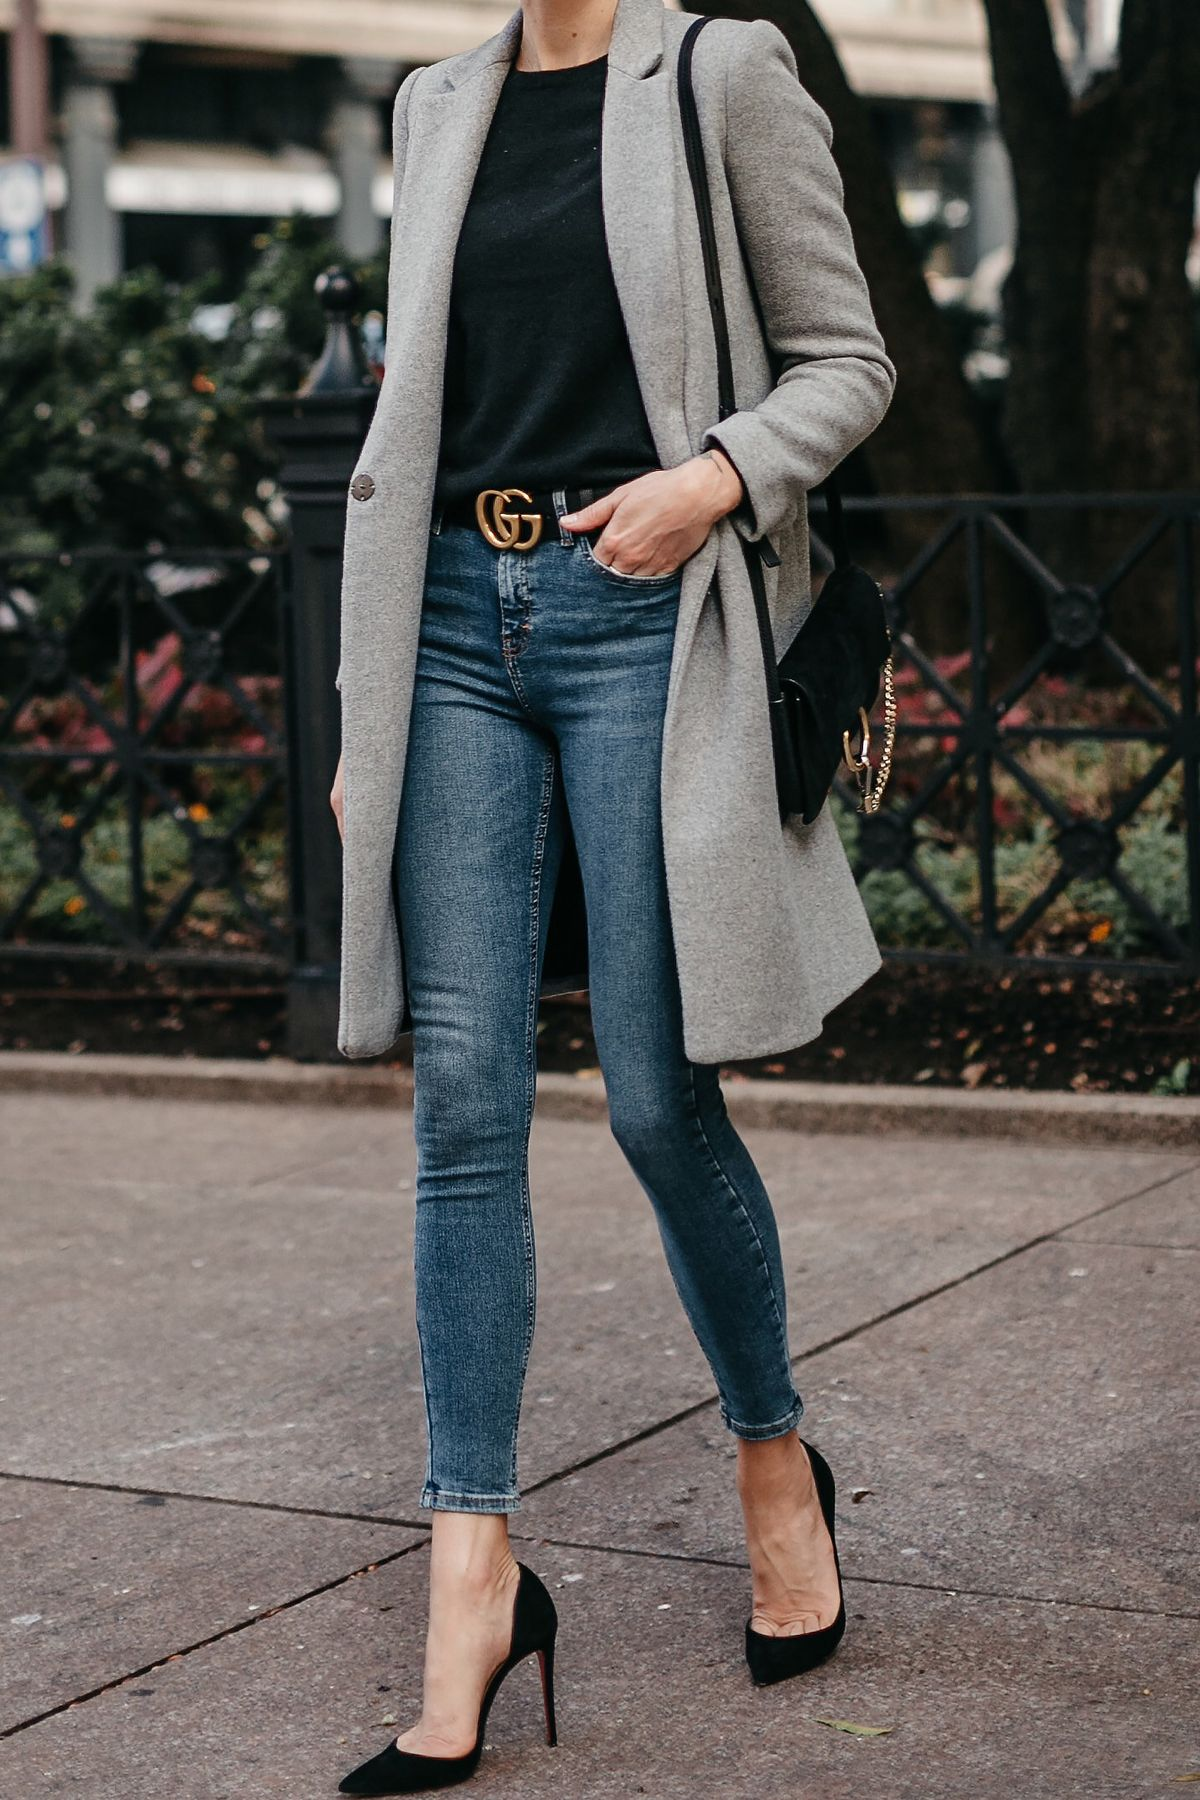 0e2a93ce3f Zara Grey Wool Coat Black Sweater Denim Skinny Jeans Gucci Marmont Belt  Christian Louboutin Black Pumps Fashion Jackson Dallas Blogger Fashion  Blogger ...